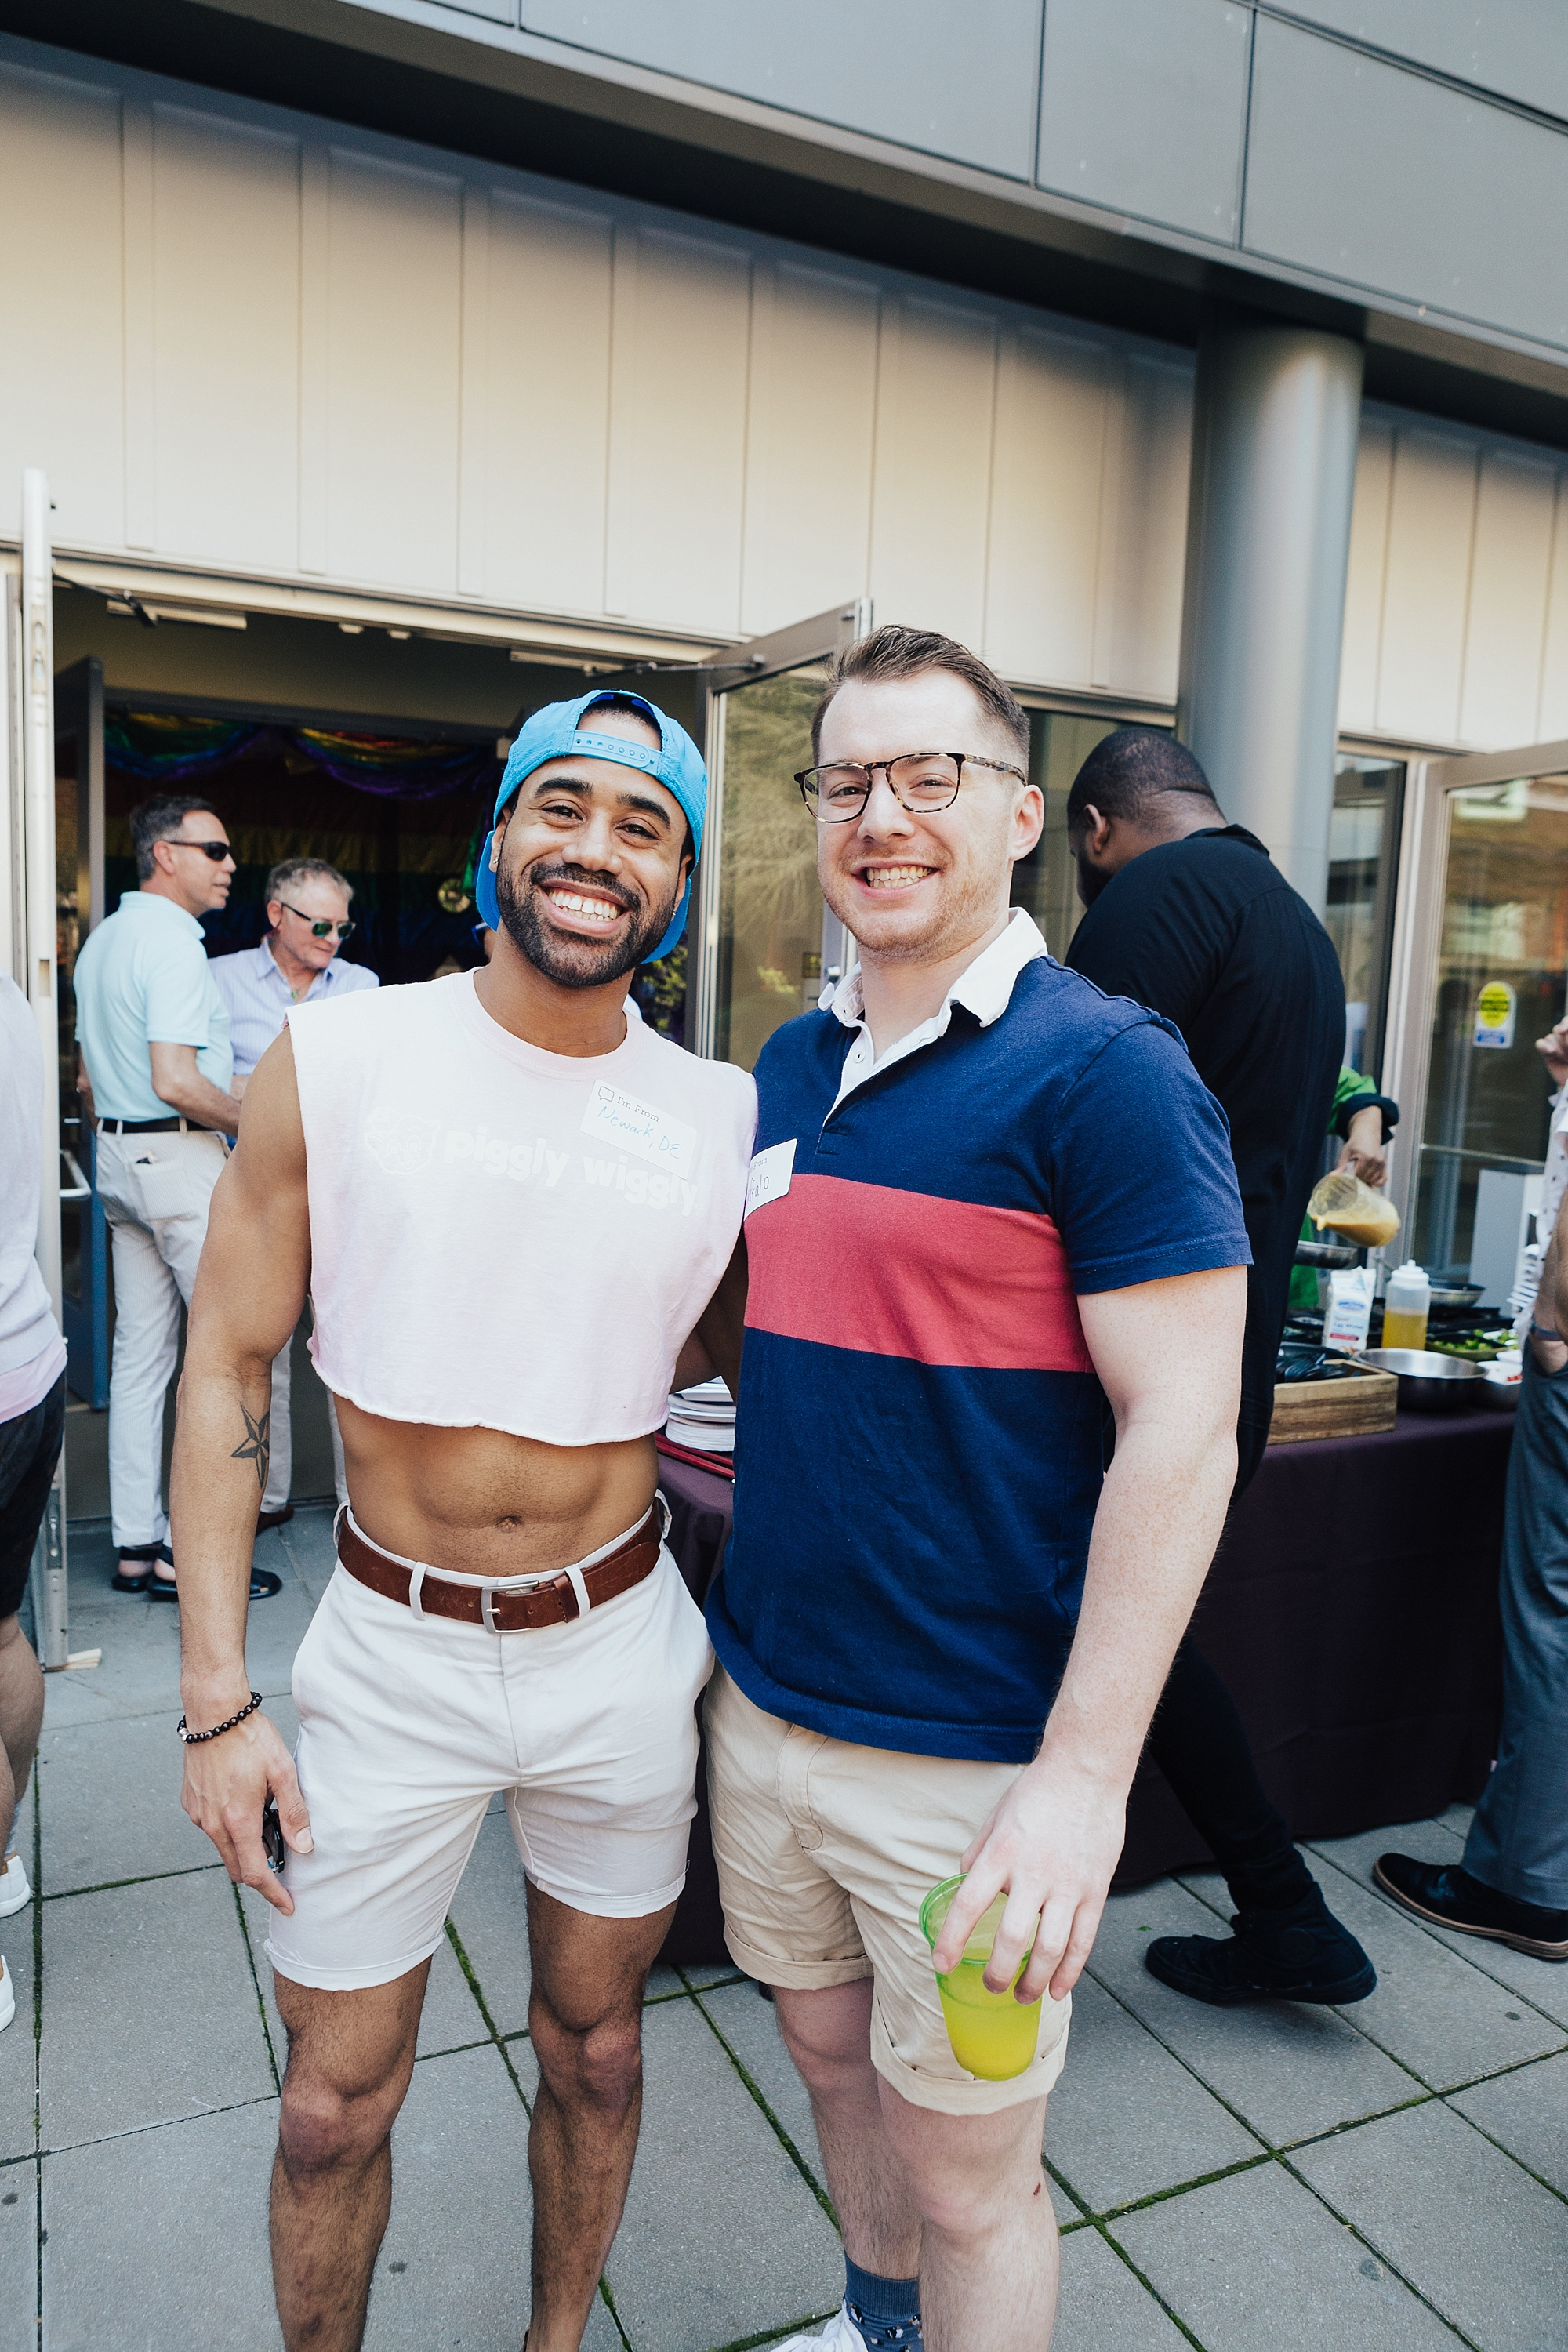 Im_From_Driftwood_Small_Joe_Mac_Creative_Photography_Gay_Queer_LGBT_Philadelphia_0262.JPG